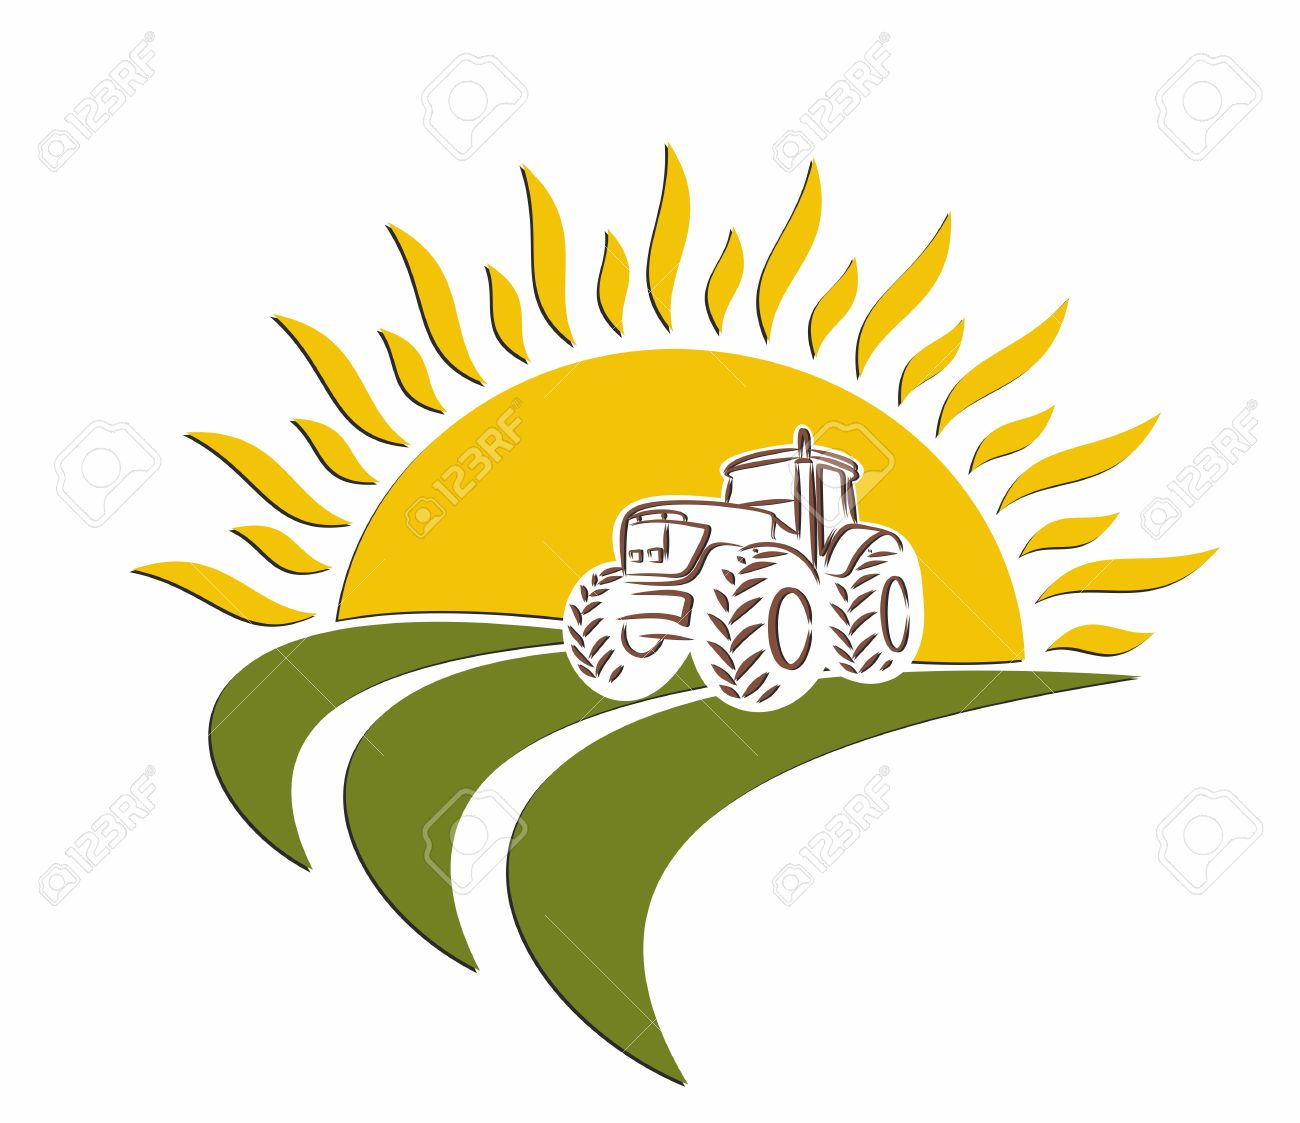 A tractor logo in a wheat field from the sun dawn. - 56622600